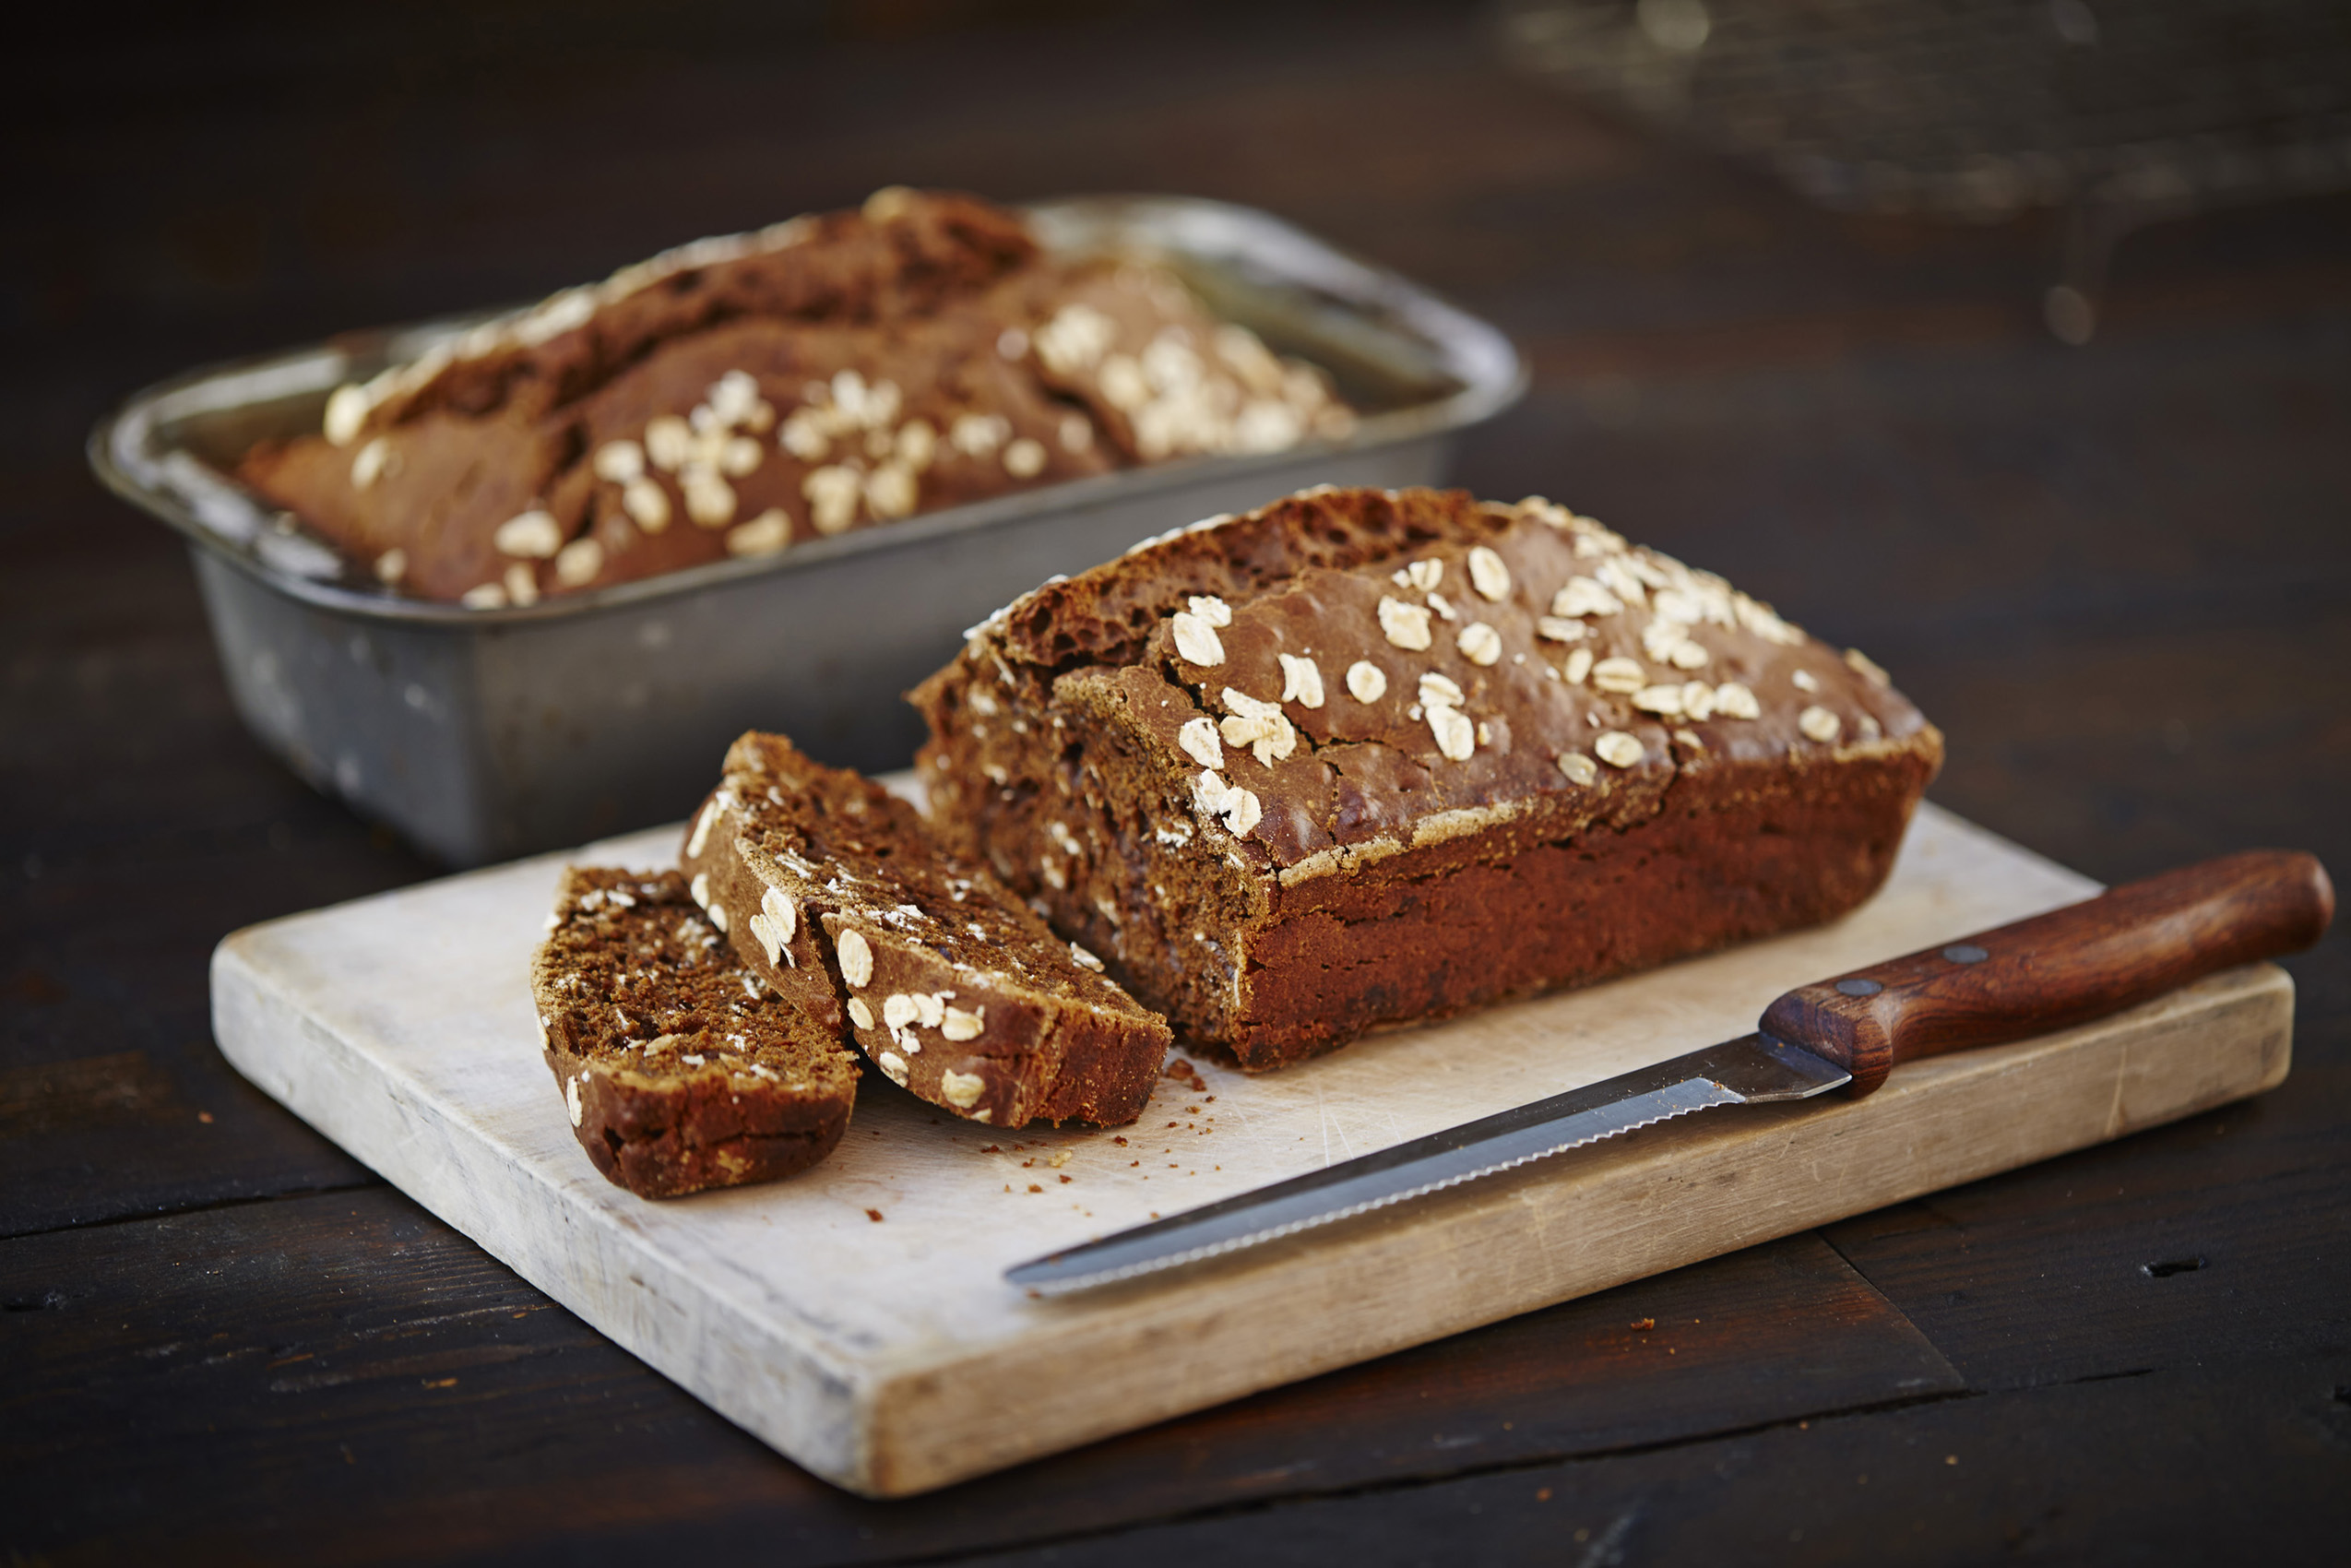 SteveRyan_Photographer_Food_BrownBread_178